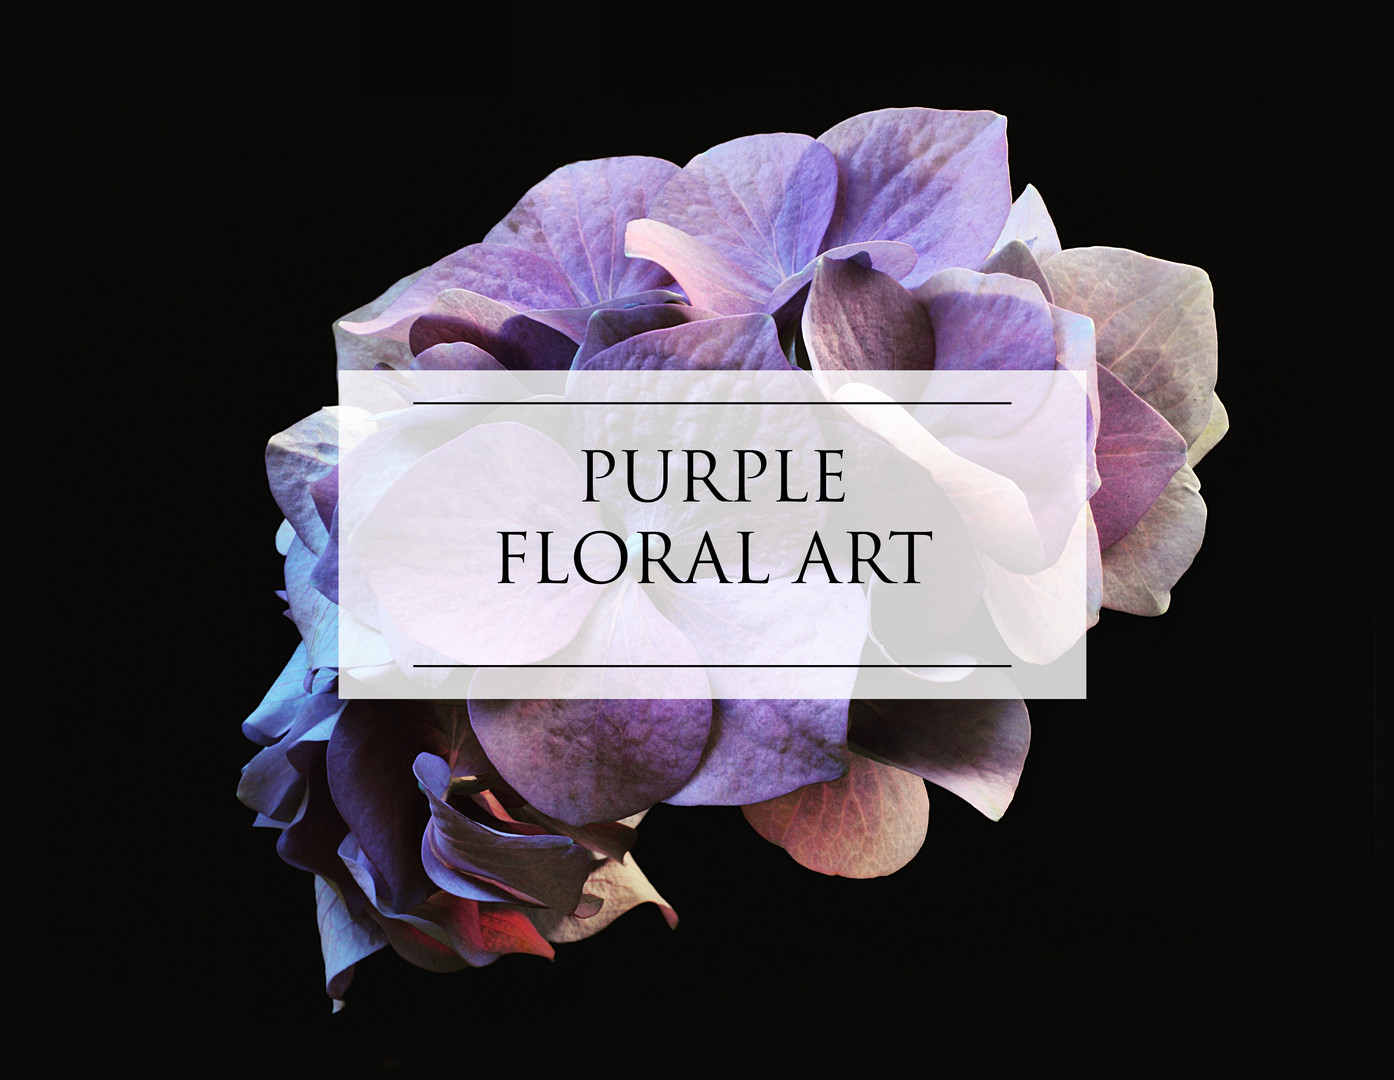 PURPLE FLORAL ART